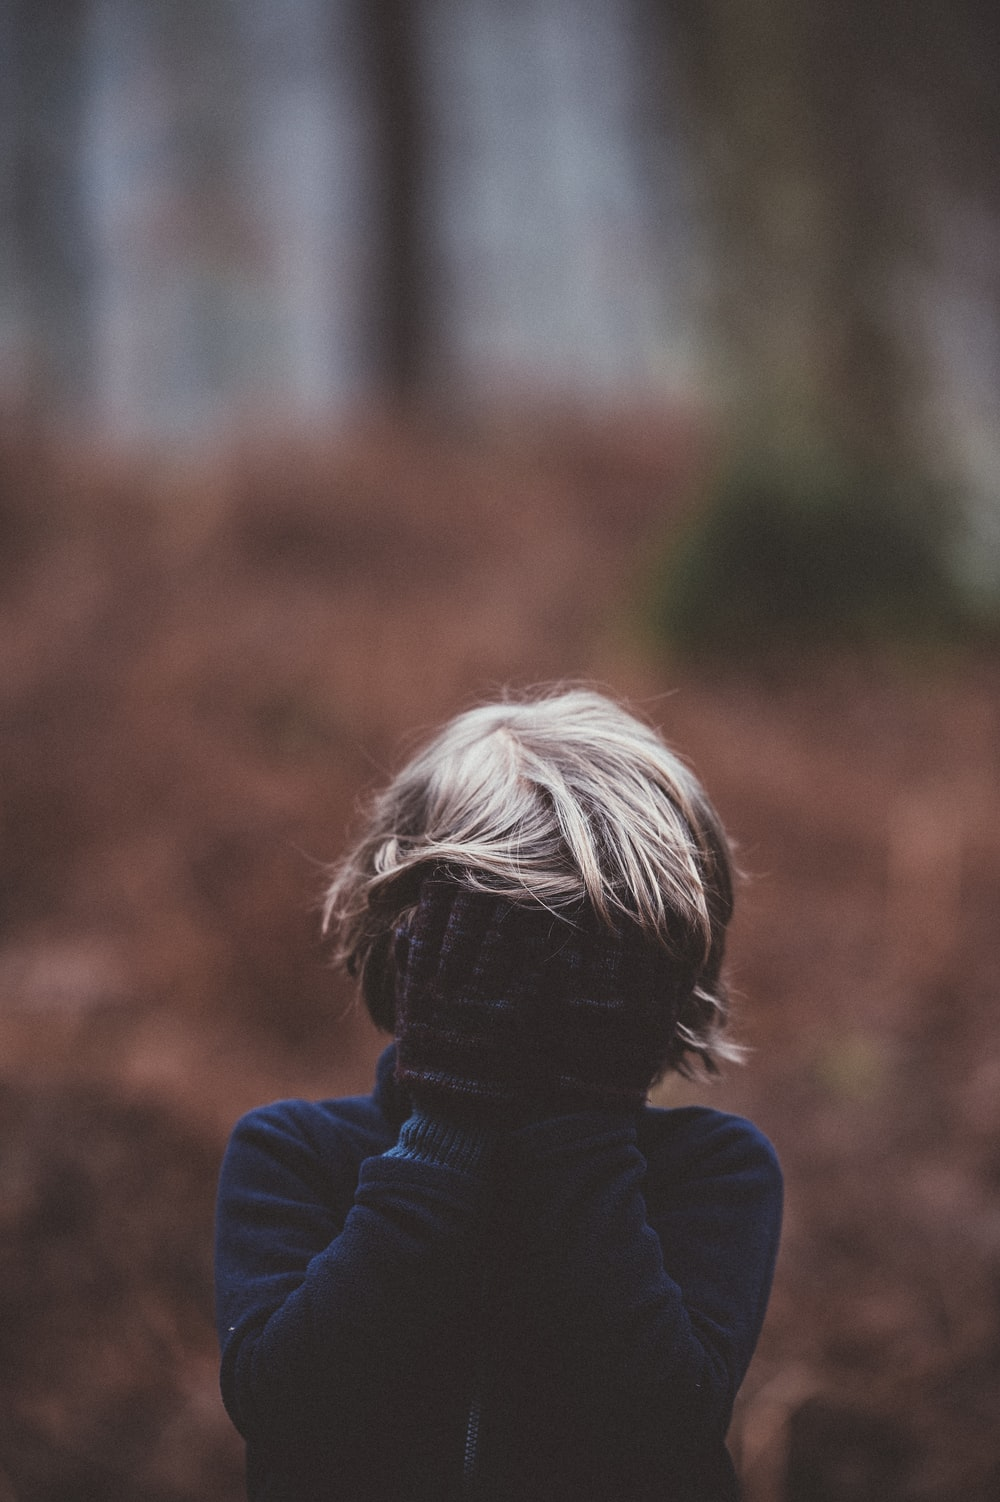 500 Sad Boy Pictures Hd Download Free Images Stock Photos